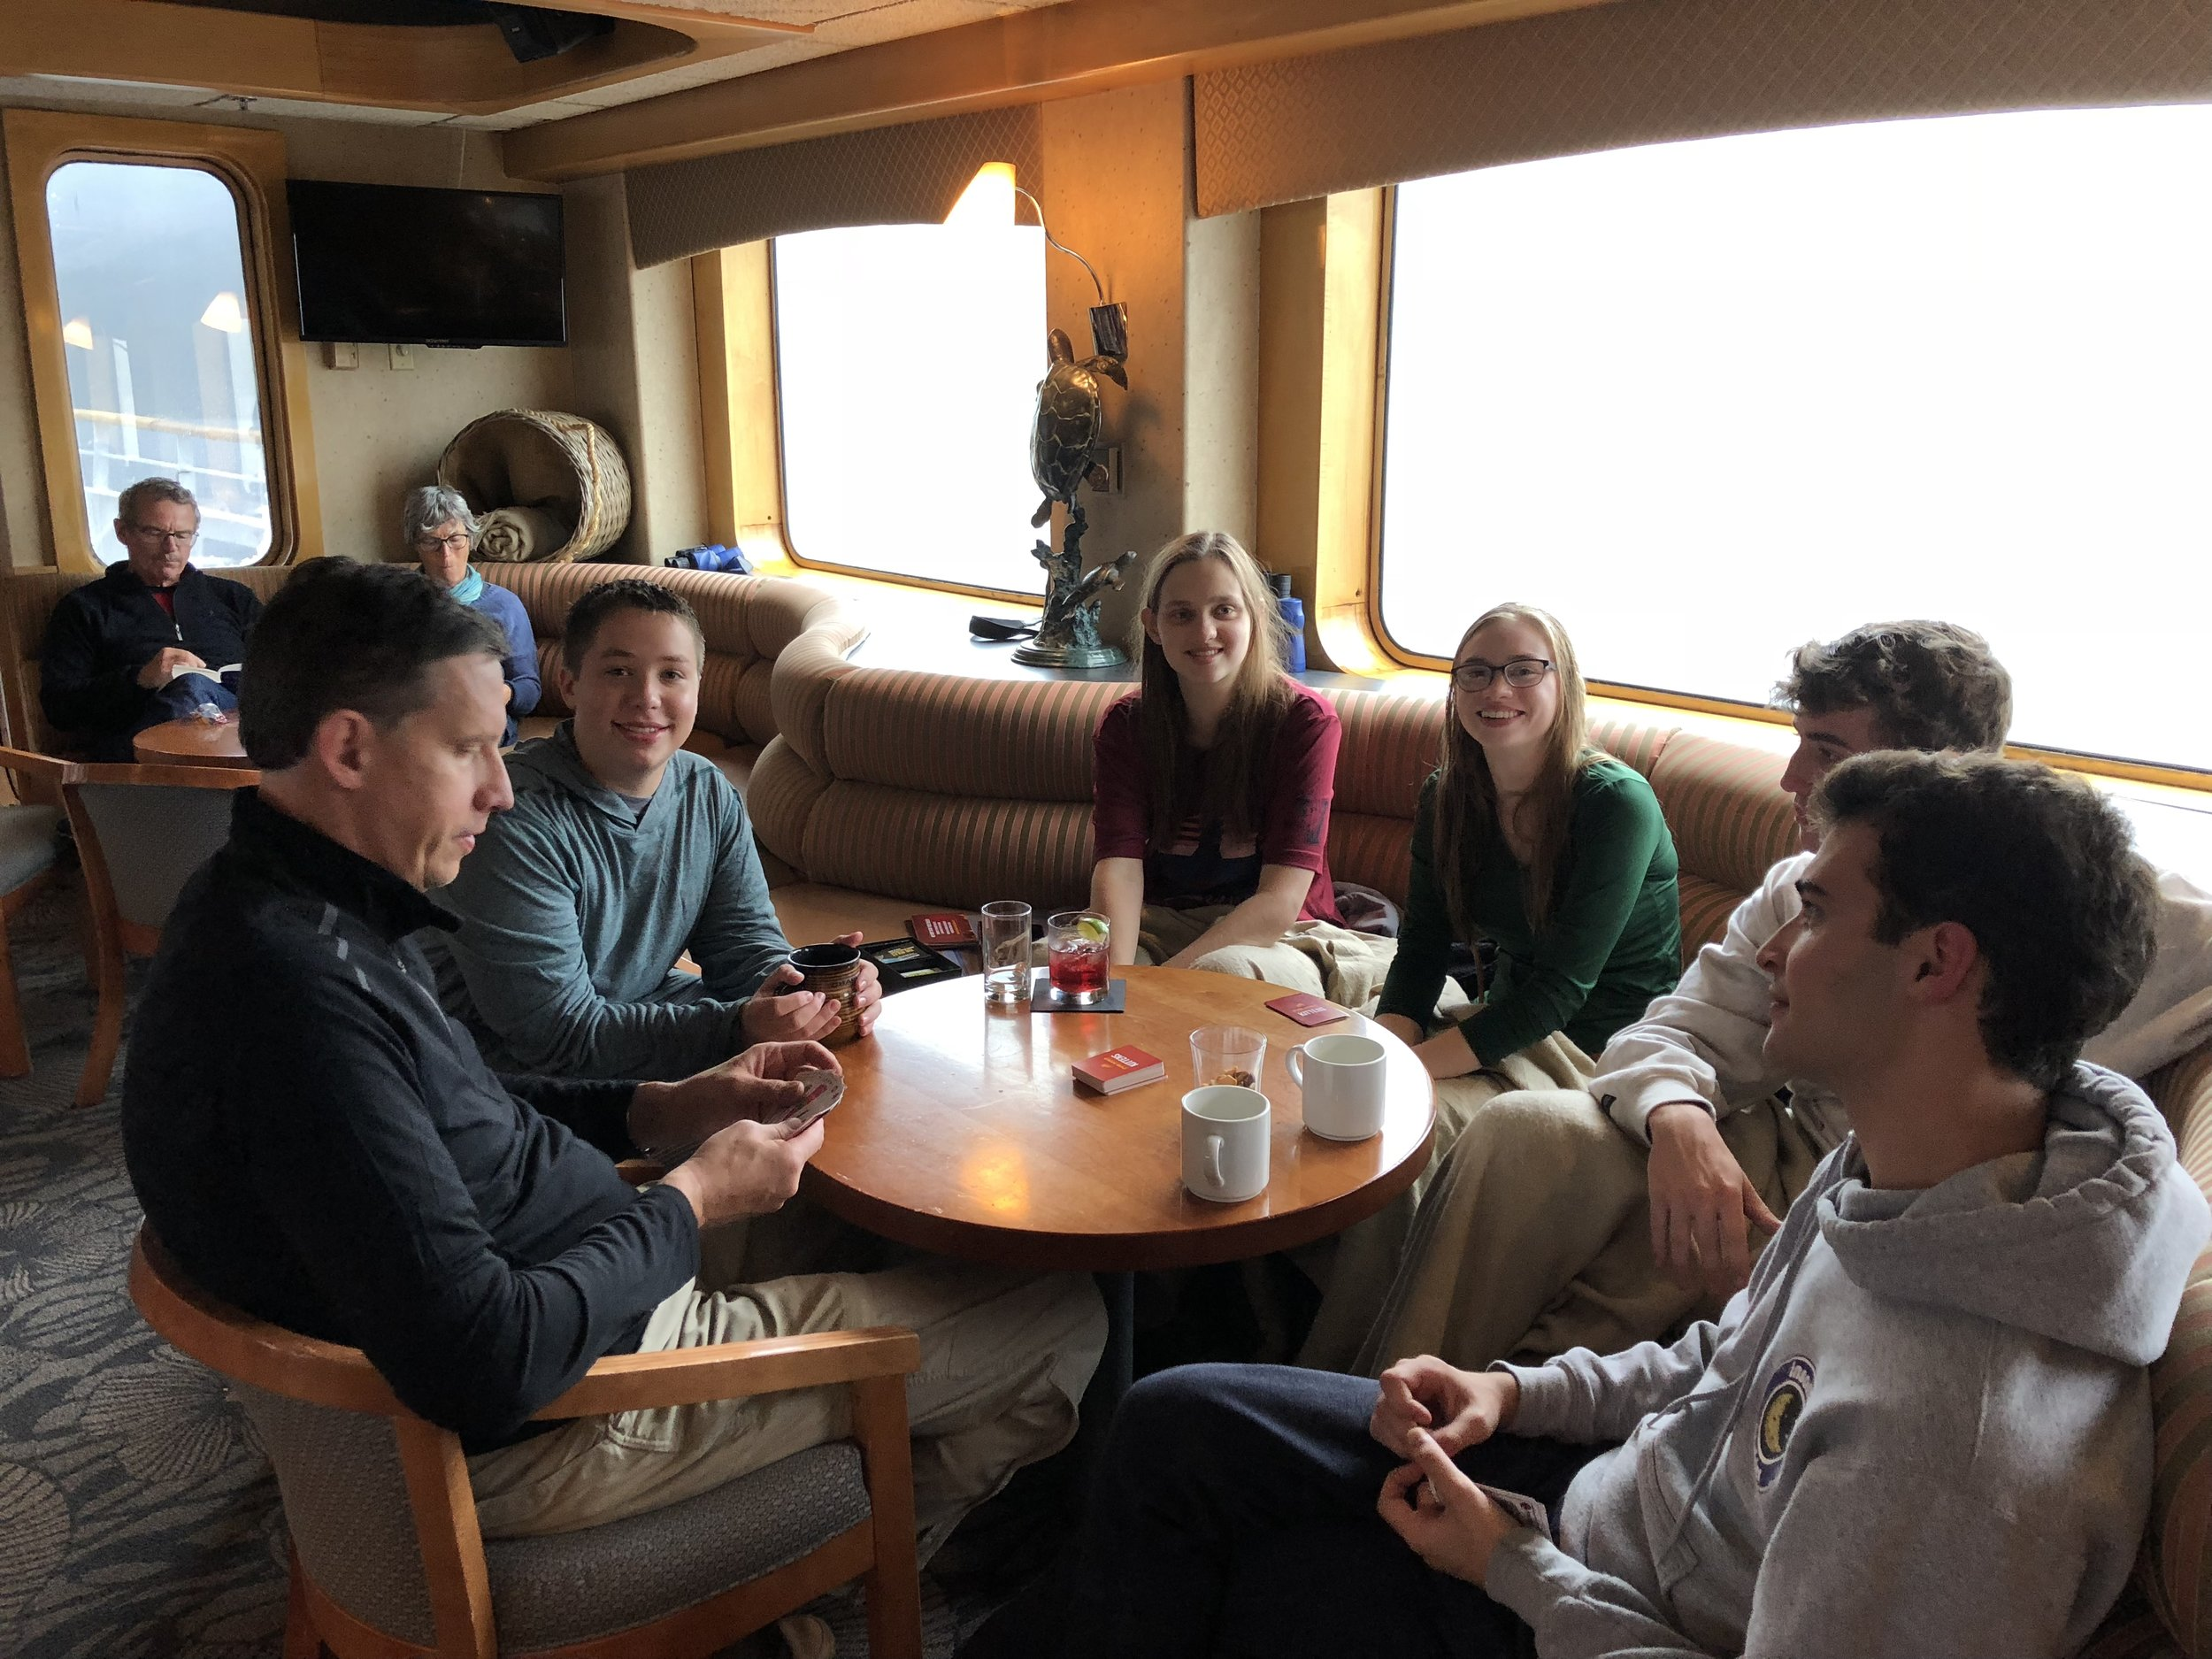 A group on board enjoys a card game in the lounge